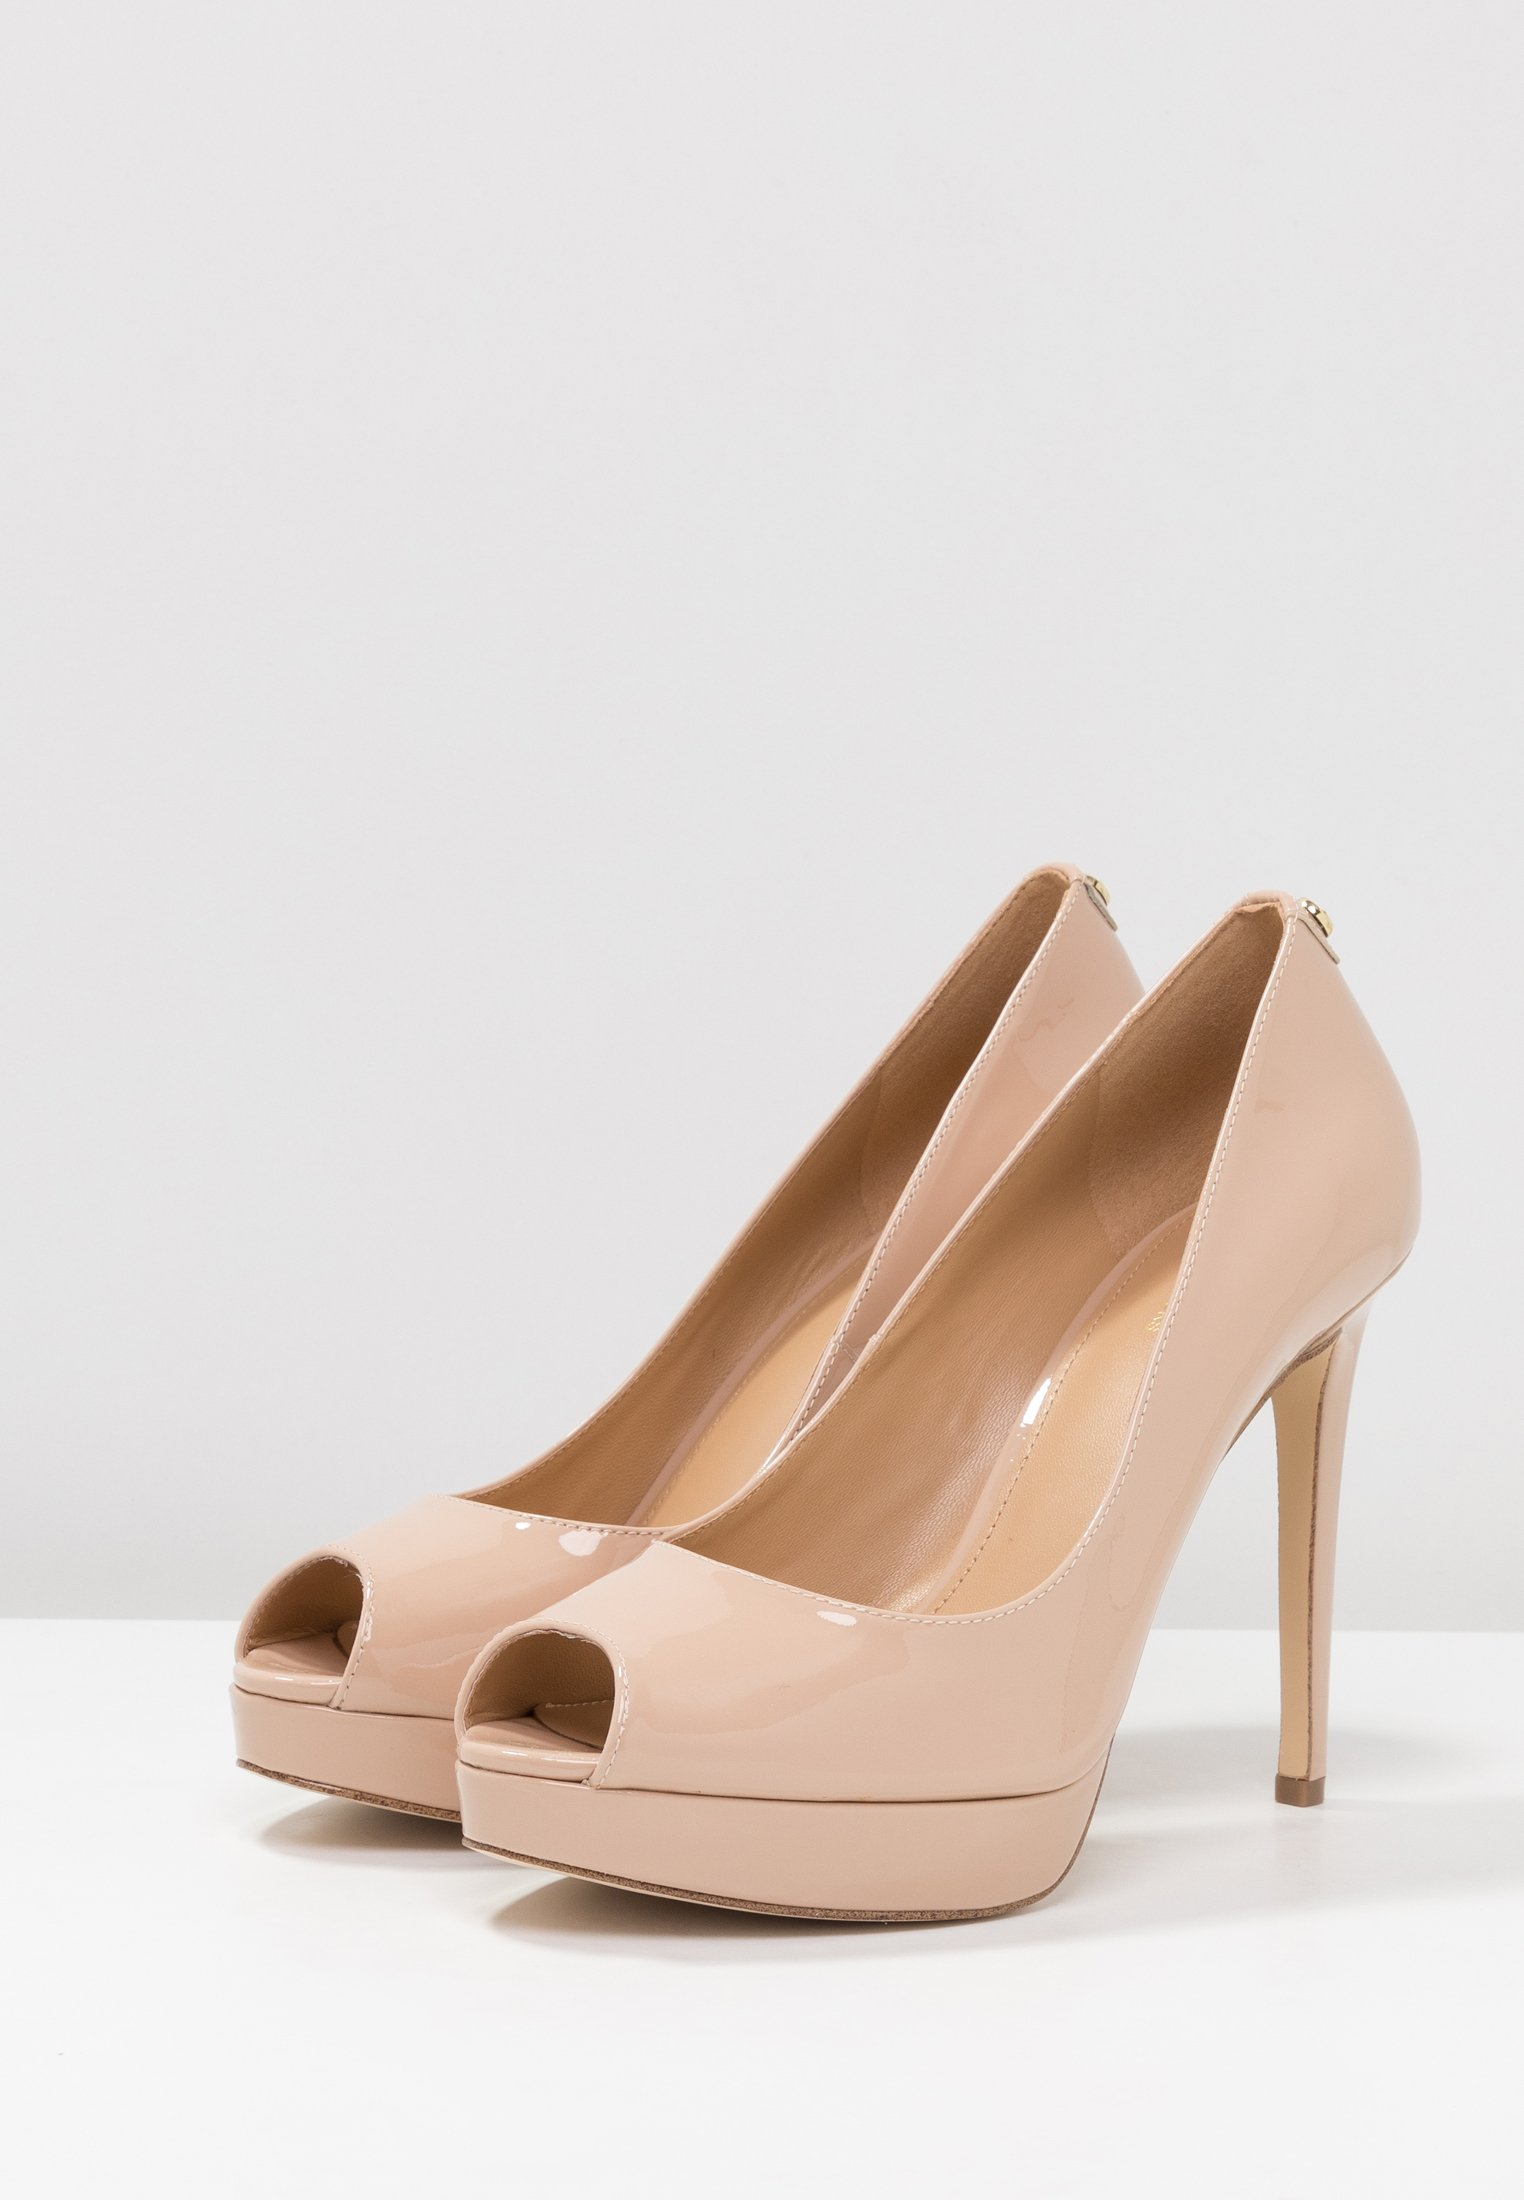 MICHAEL Michael Kors ERIKA High Heel Peeptoe light blush/nude